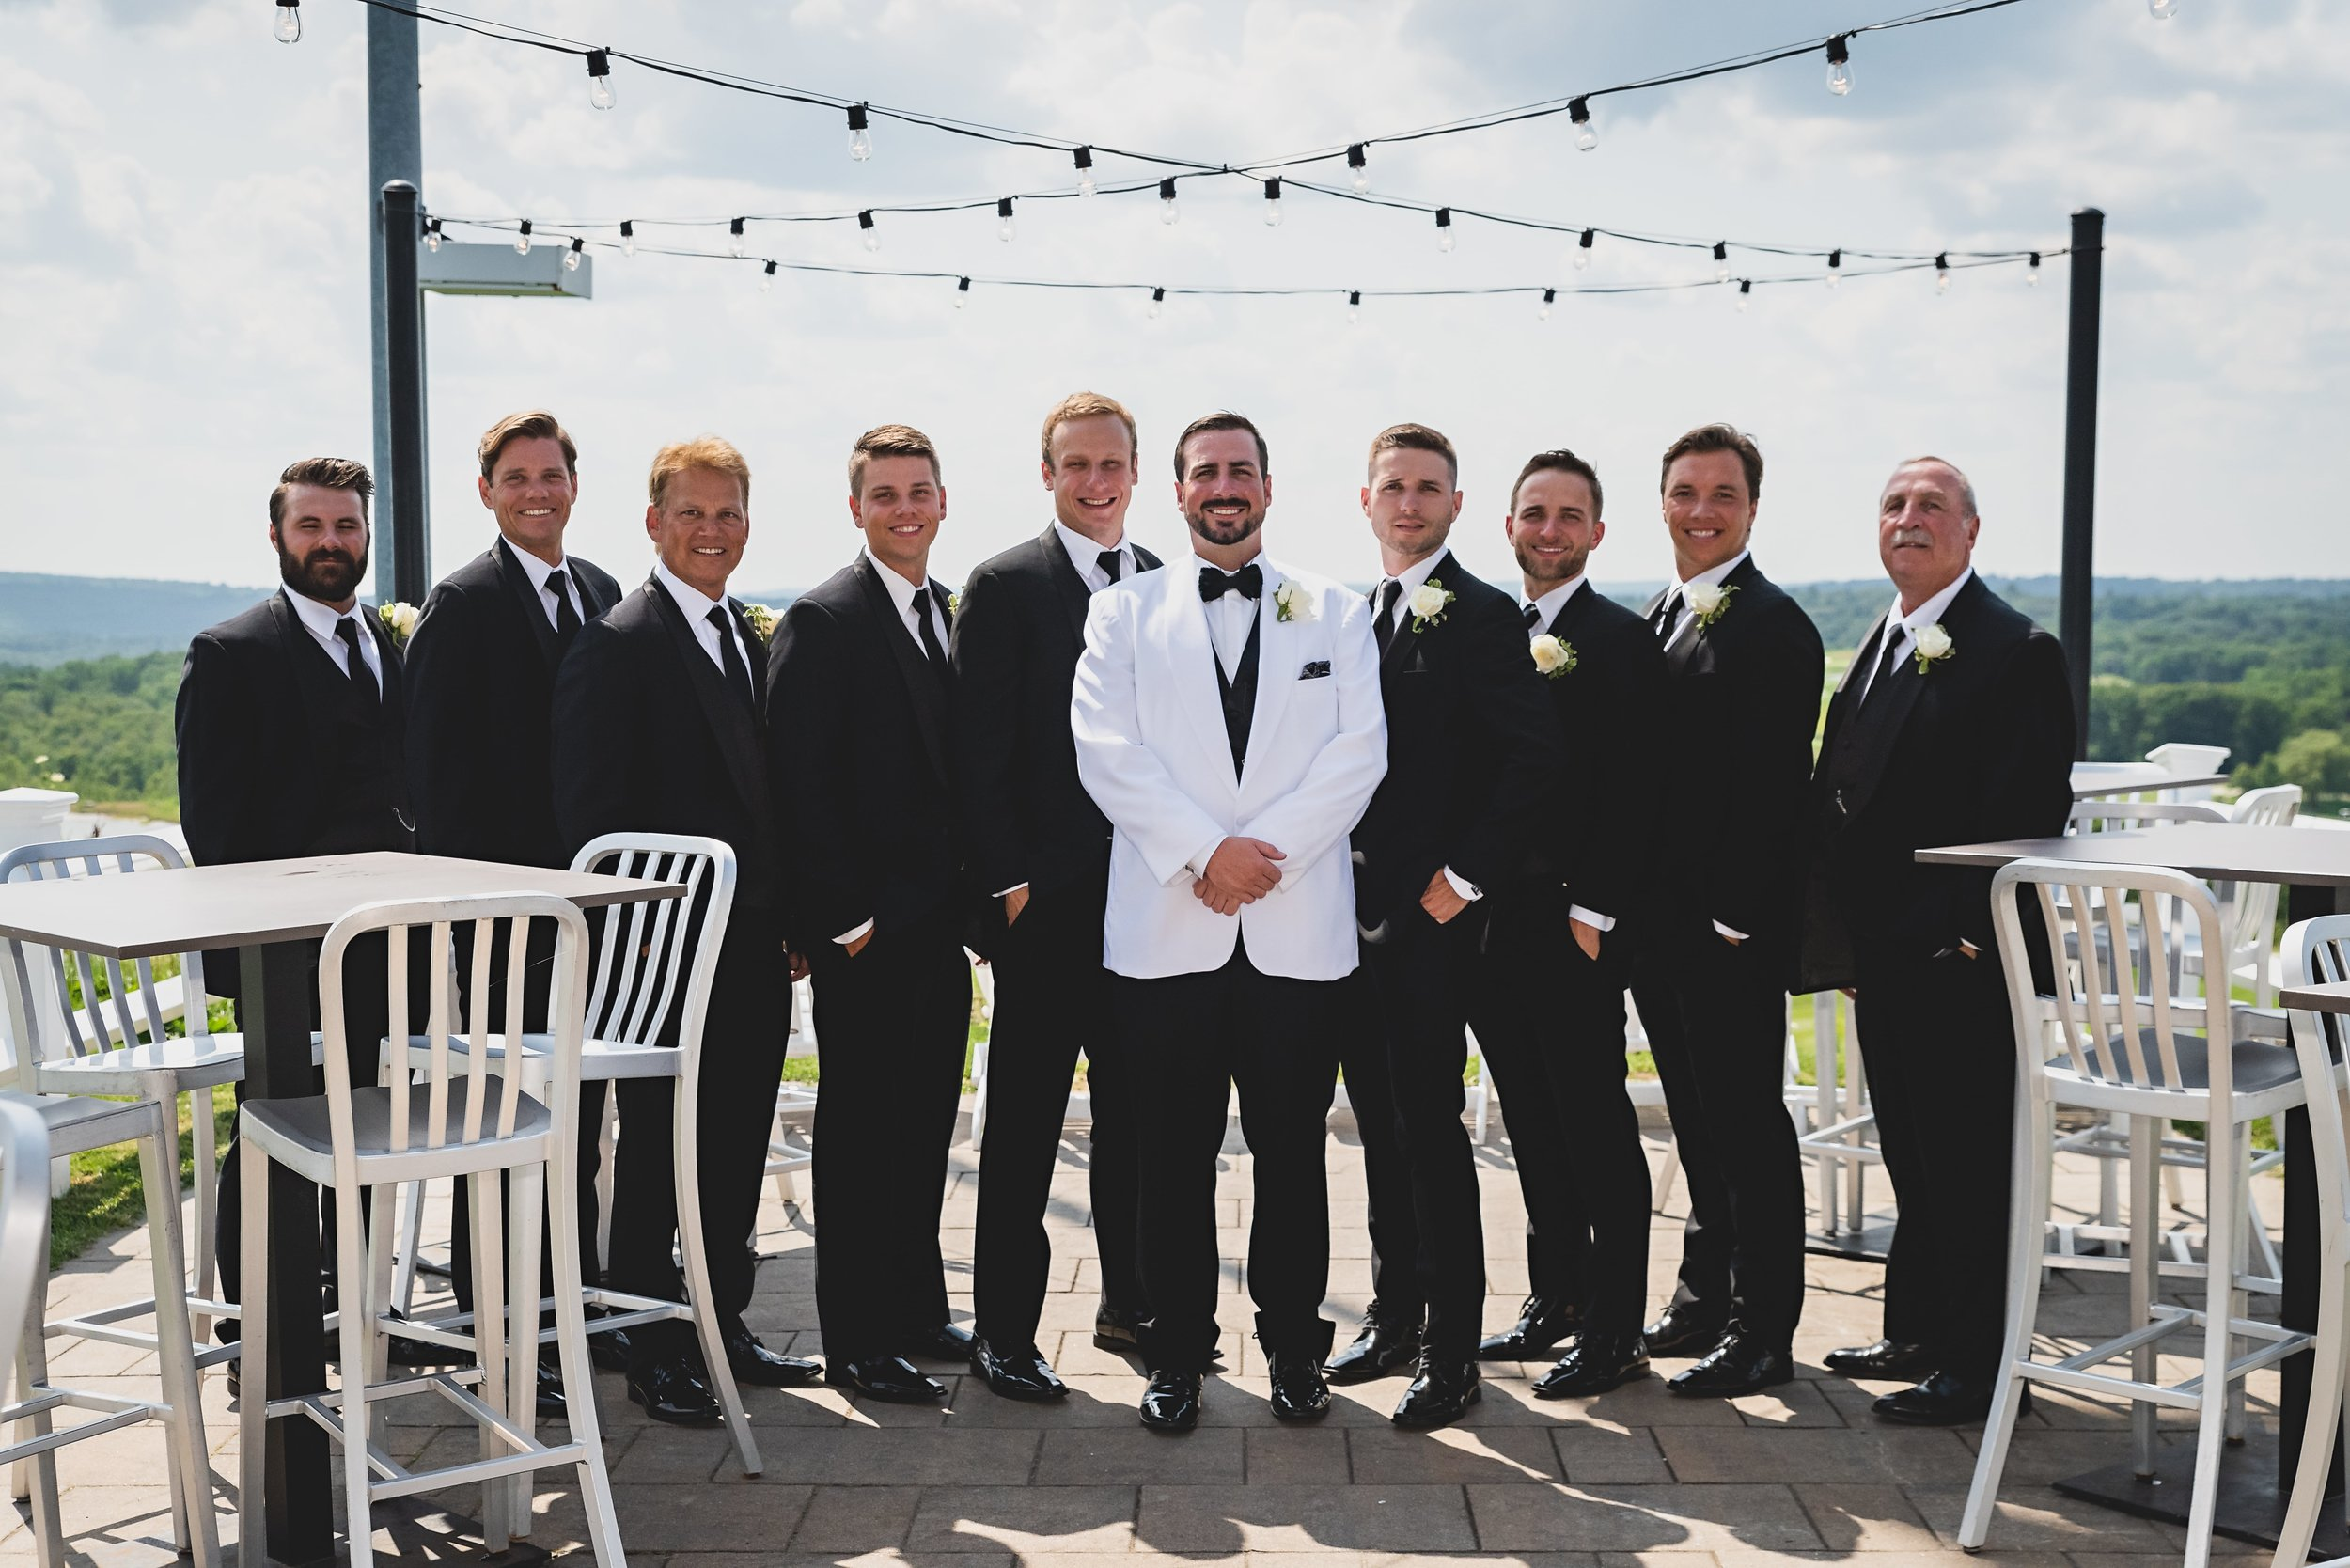 A groom in a white tuxedo flanked by his groomsman in black tuxedos.